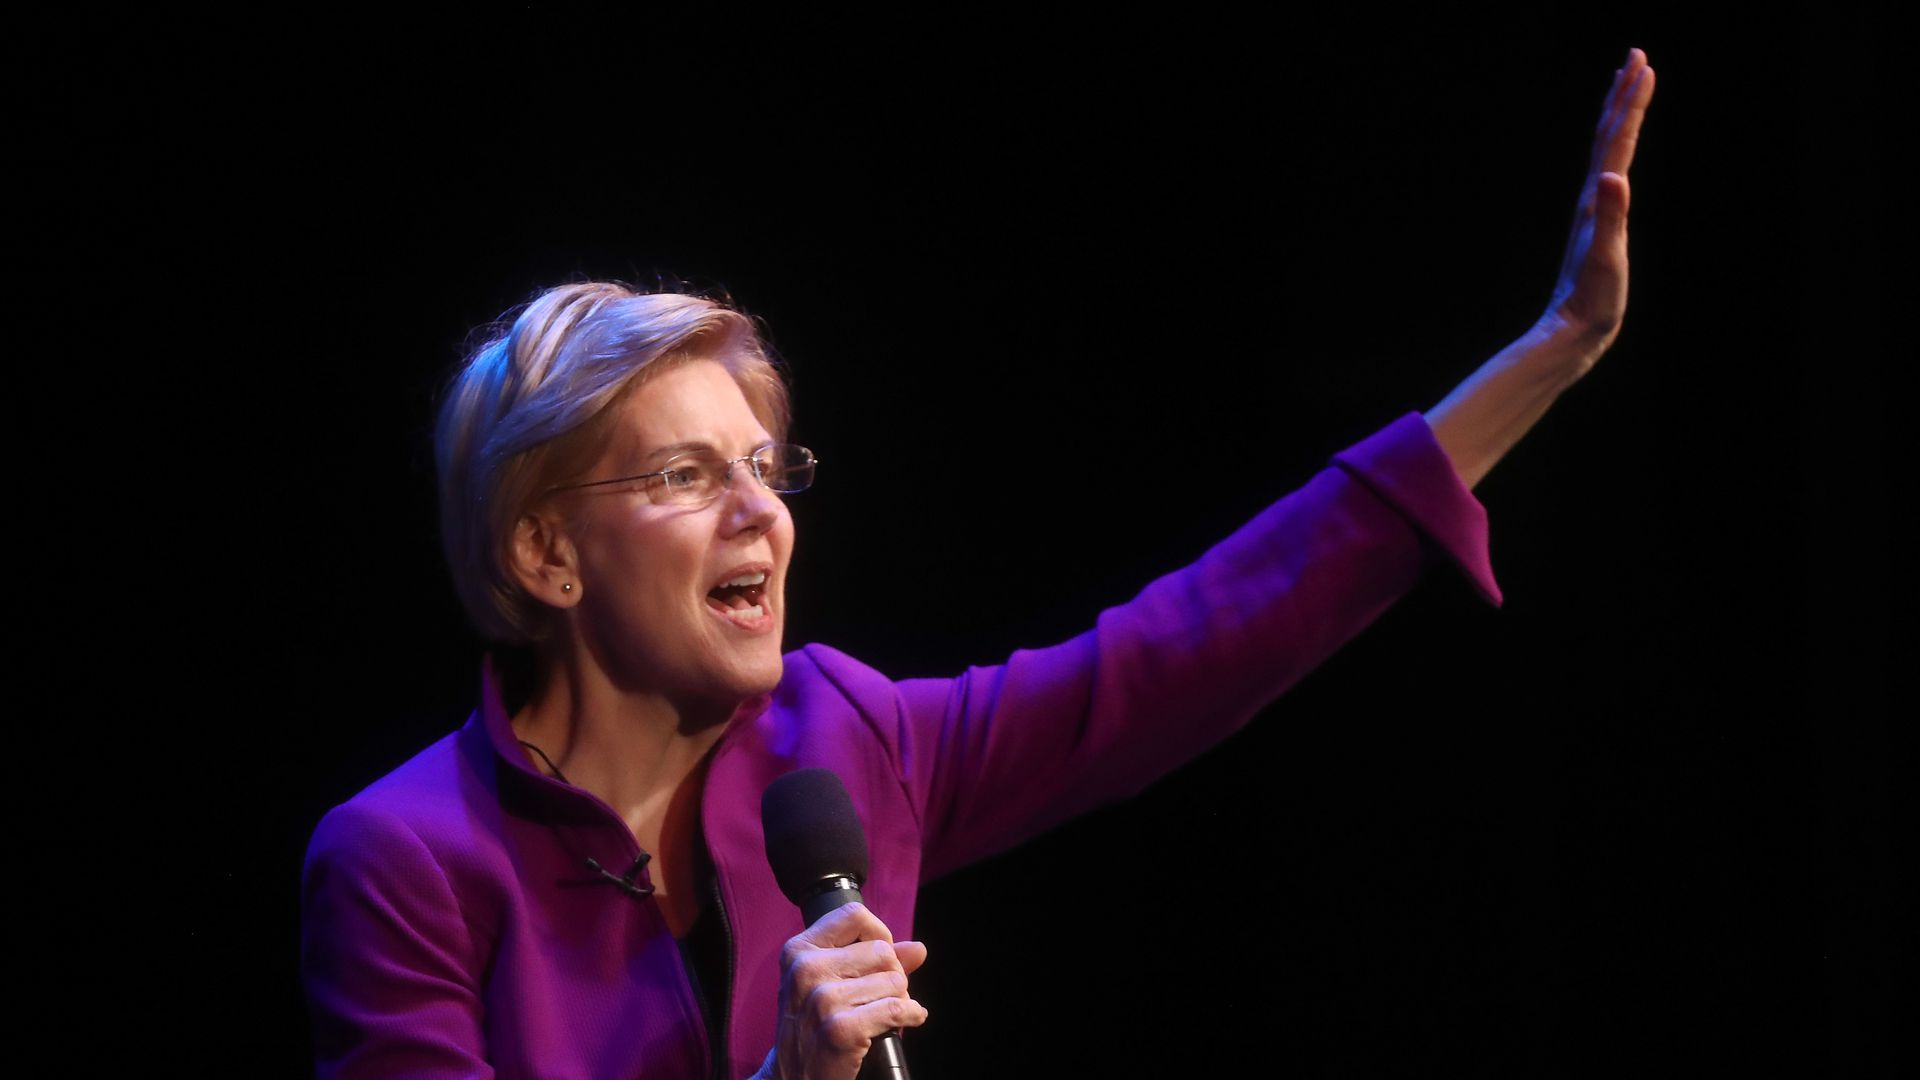 Elizabeth Warren give a speech with her arm raised up